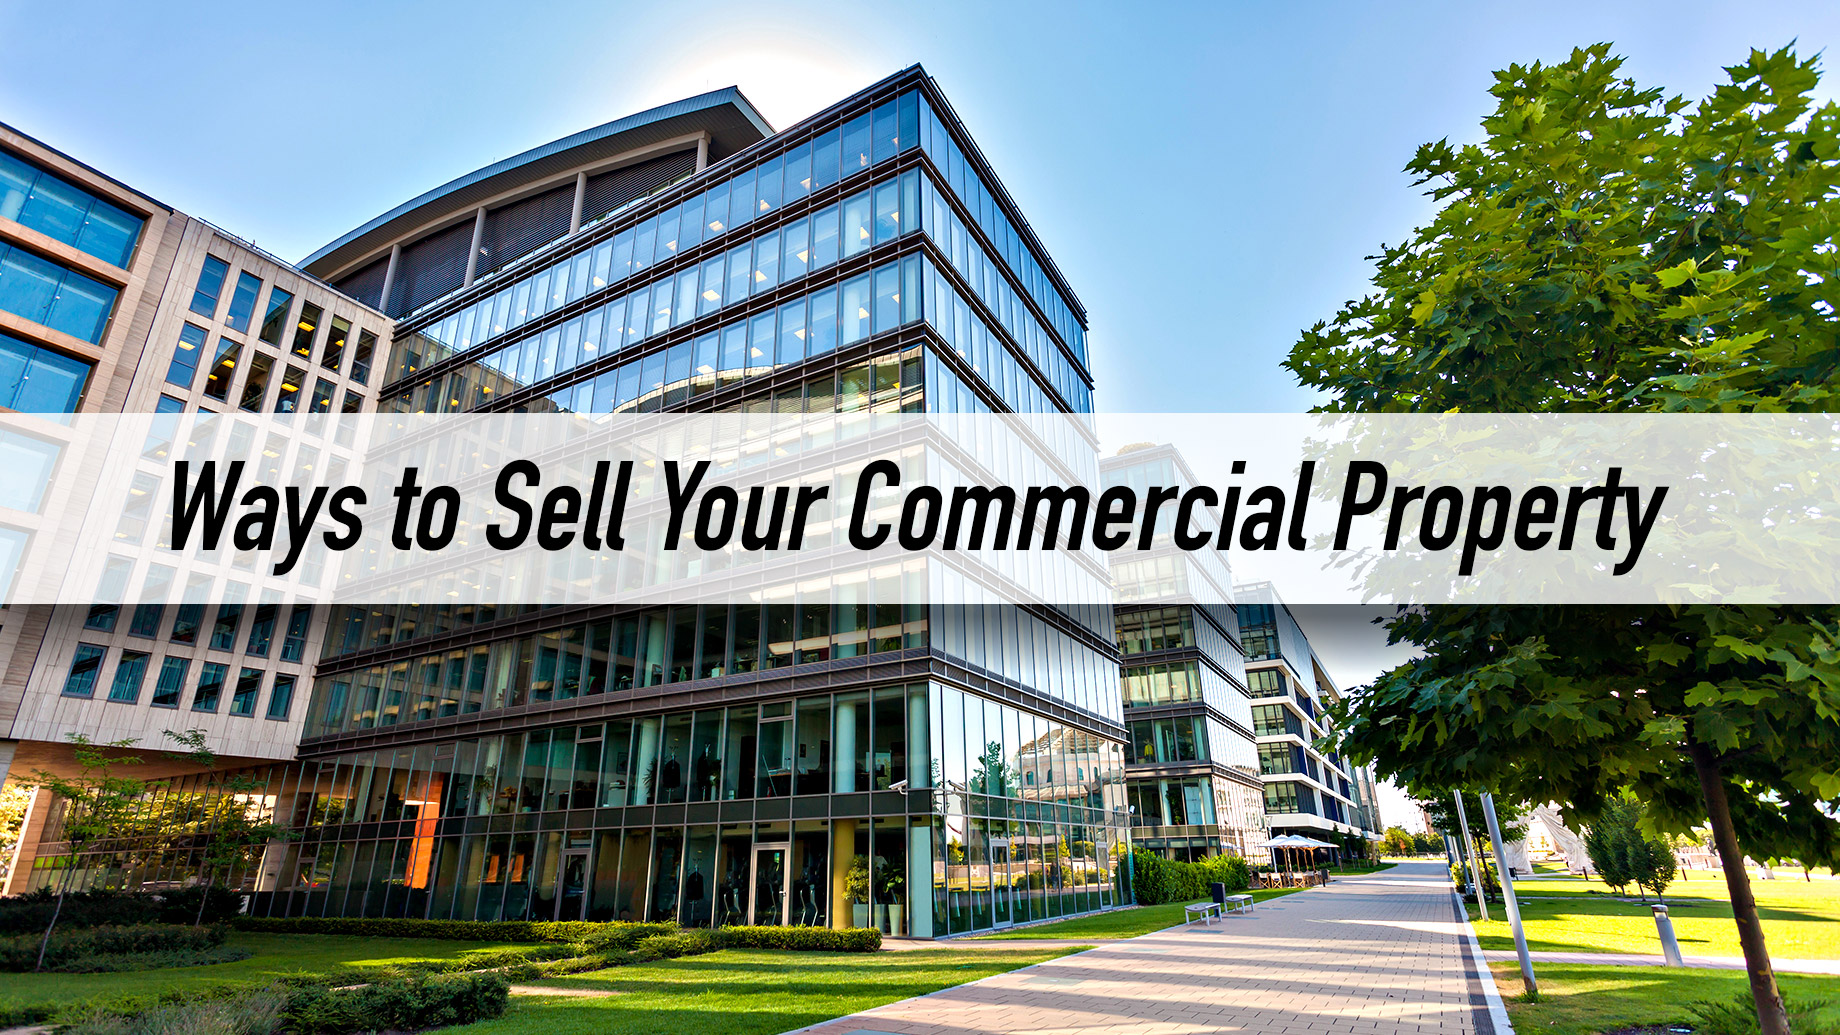 Ways to Sell Your Commercial Property